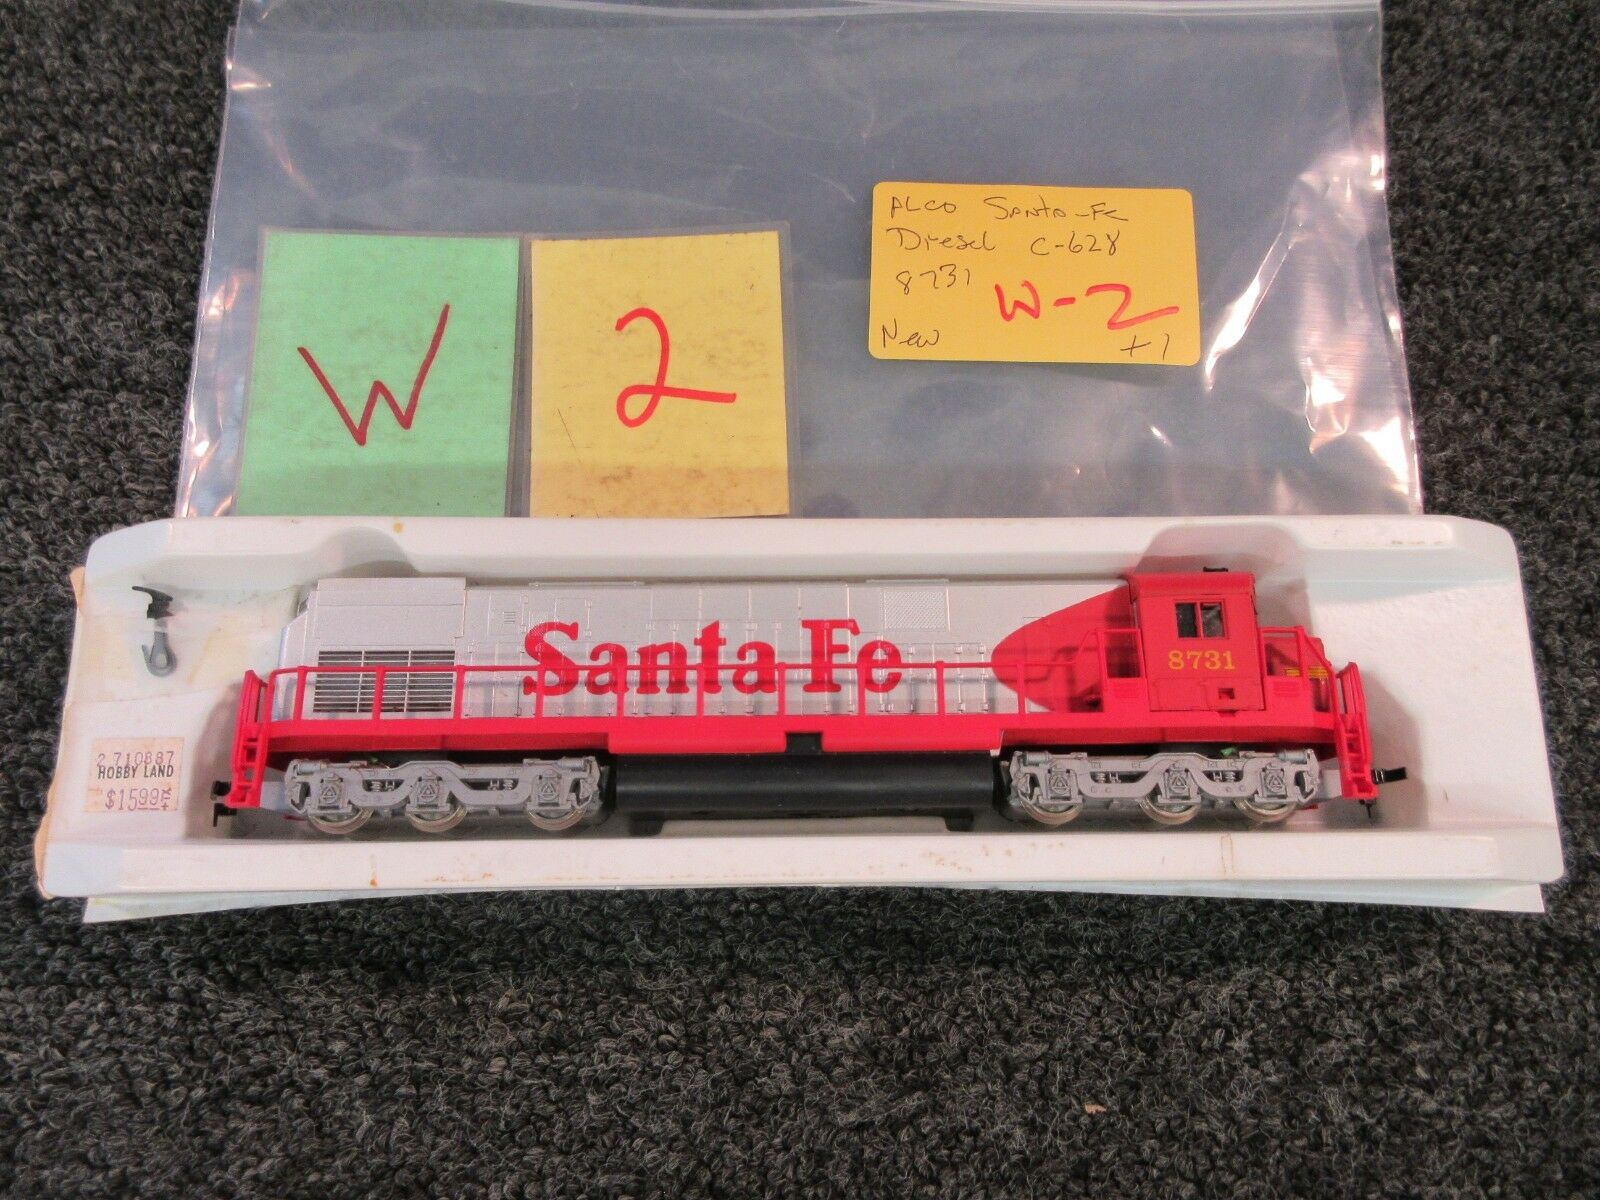 Alco Century 8731 Electric Train Engine Locomotive C628 Santa Fe Diesel Ho Scale For Sale Online